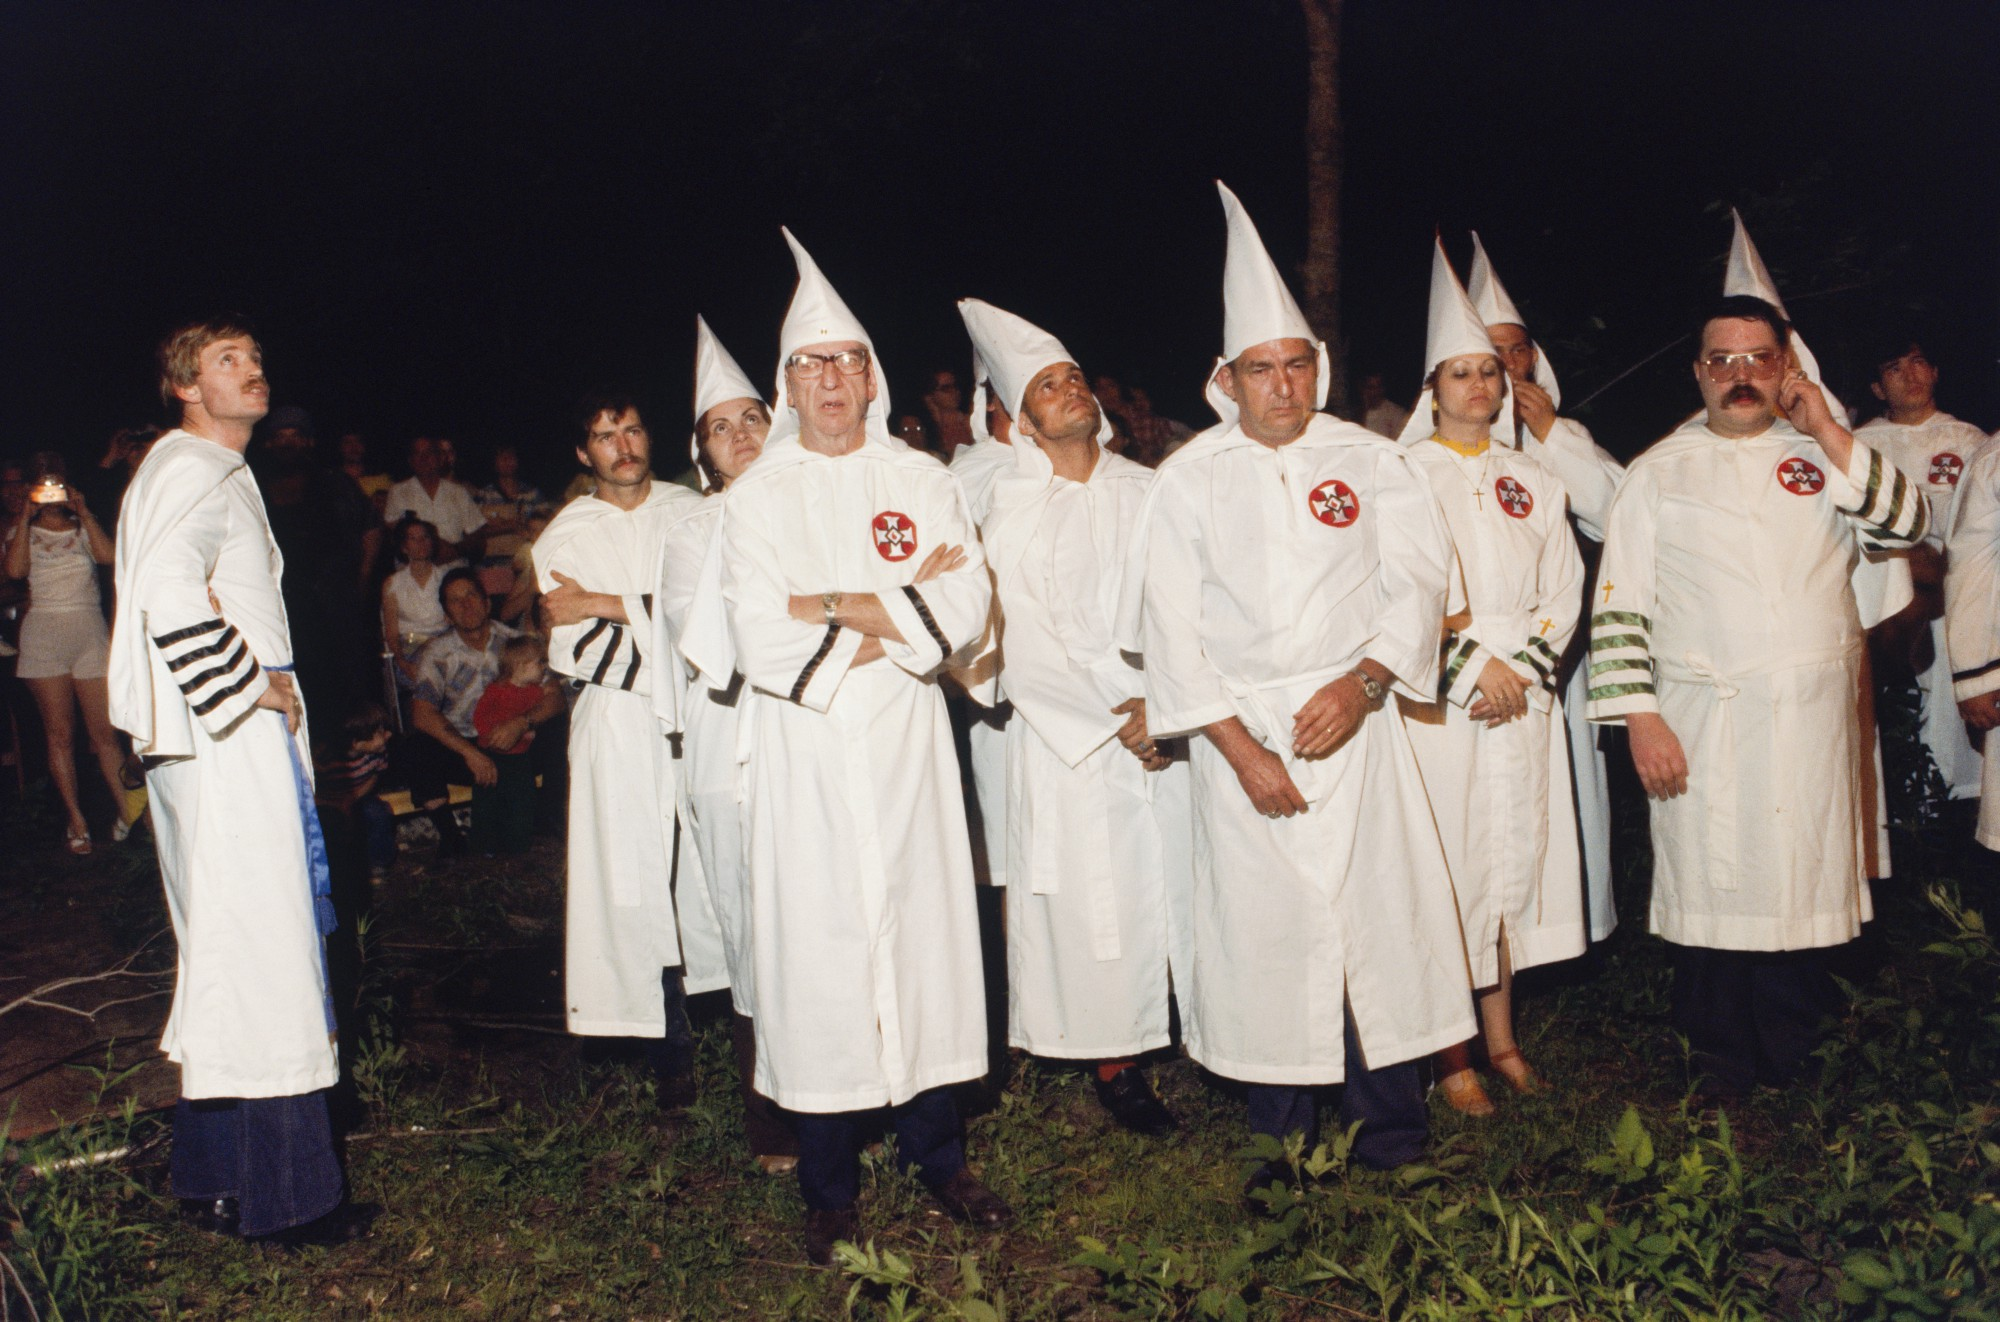 Why does the ku klux klan burn crosses they got the idea from a knights of the ku klux klan including grand wizard david duke left watch a cross burning on a louisiana farm in 19777 nathan benncorbis via getty biocorpaavc Images